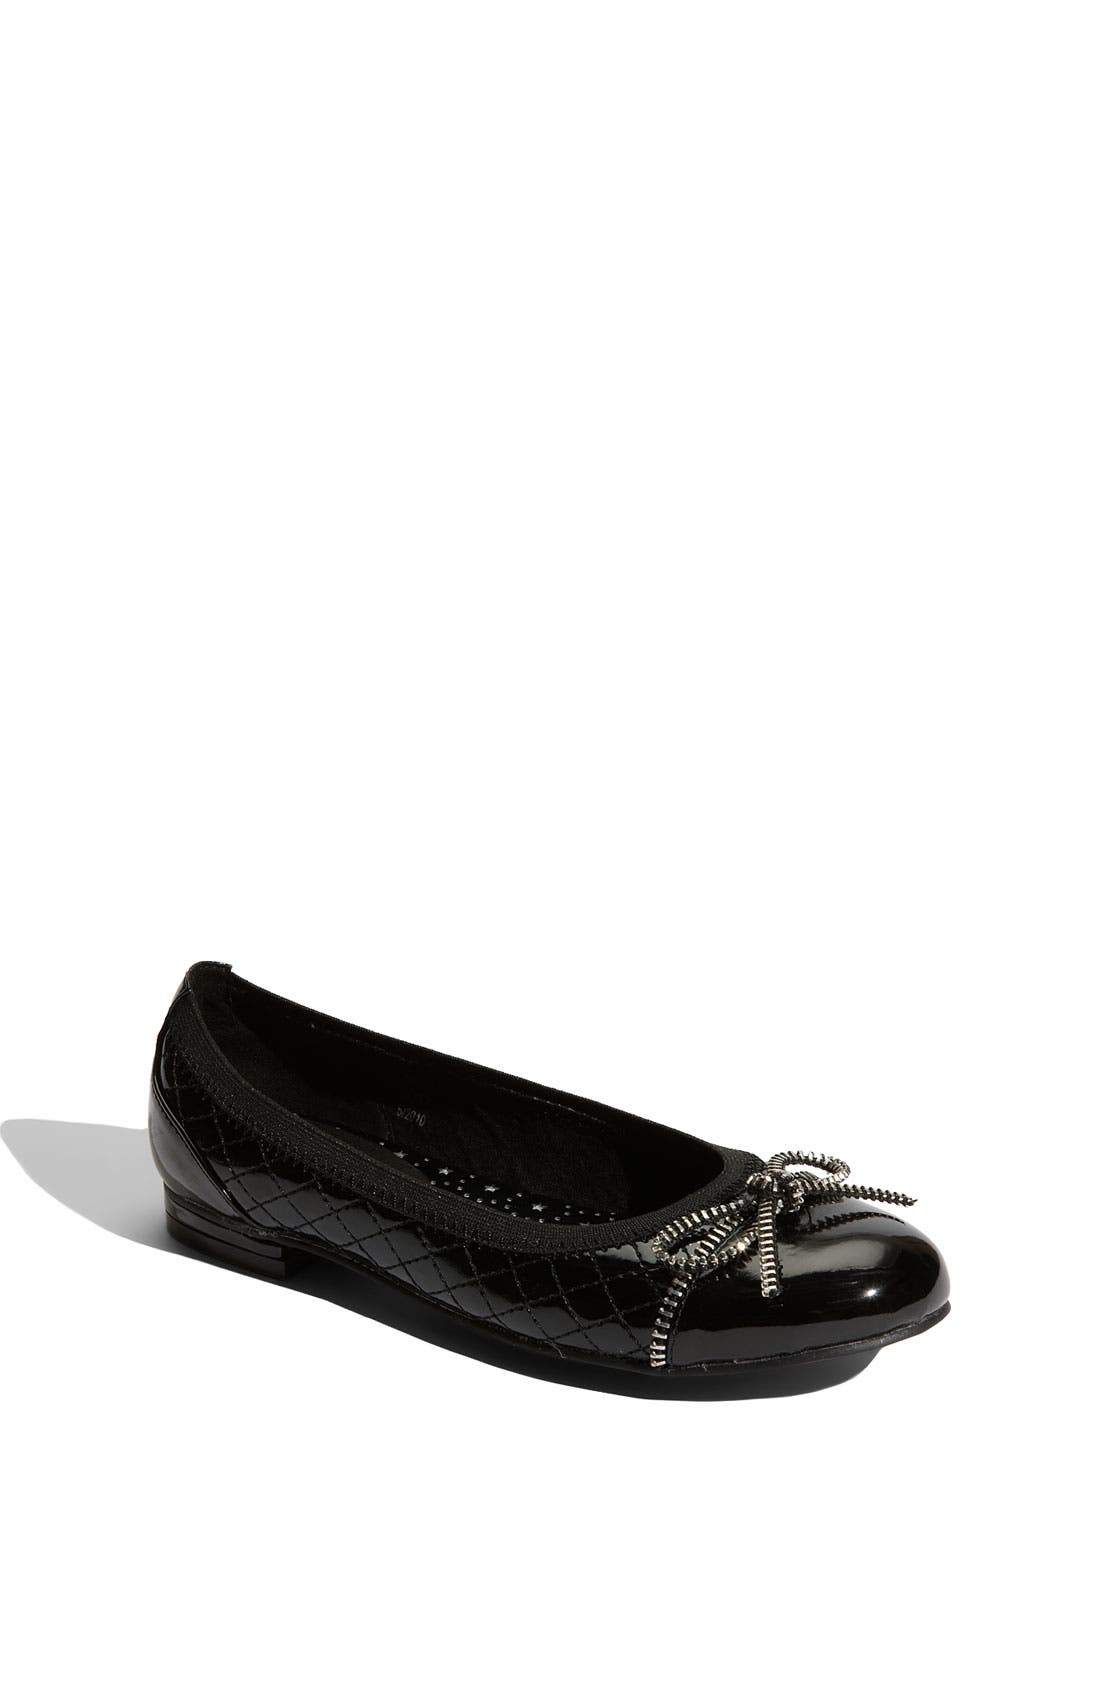 Main Image - KORS Michael Kors 'Fanny' Flat (Toddler, Little Kid & Big Kid)